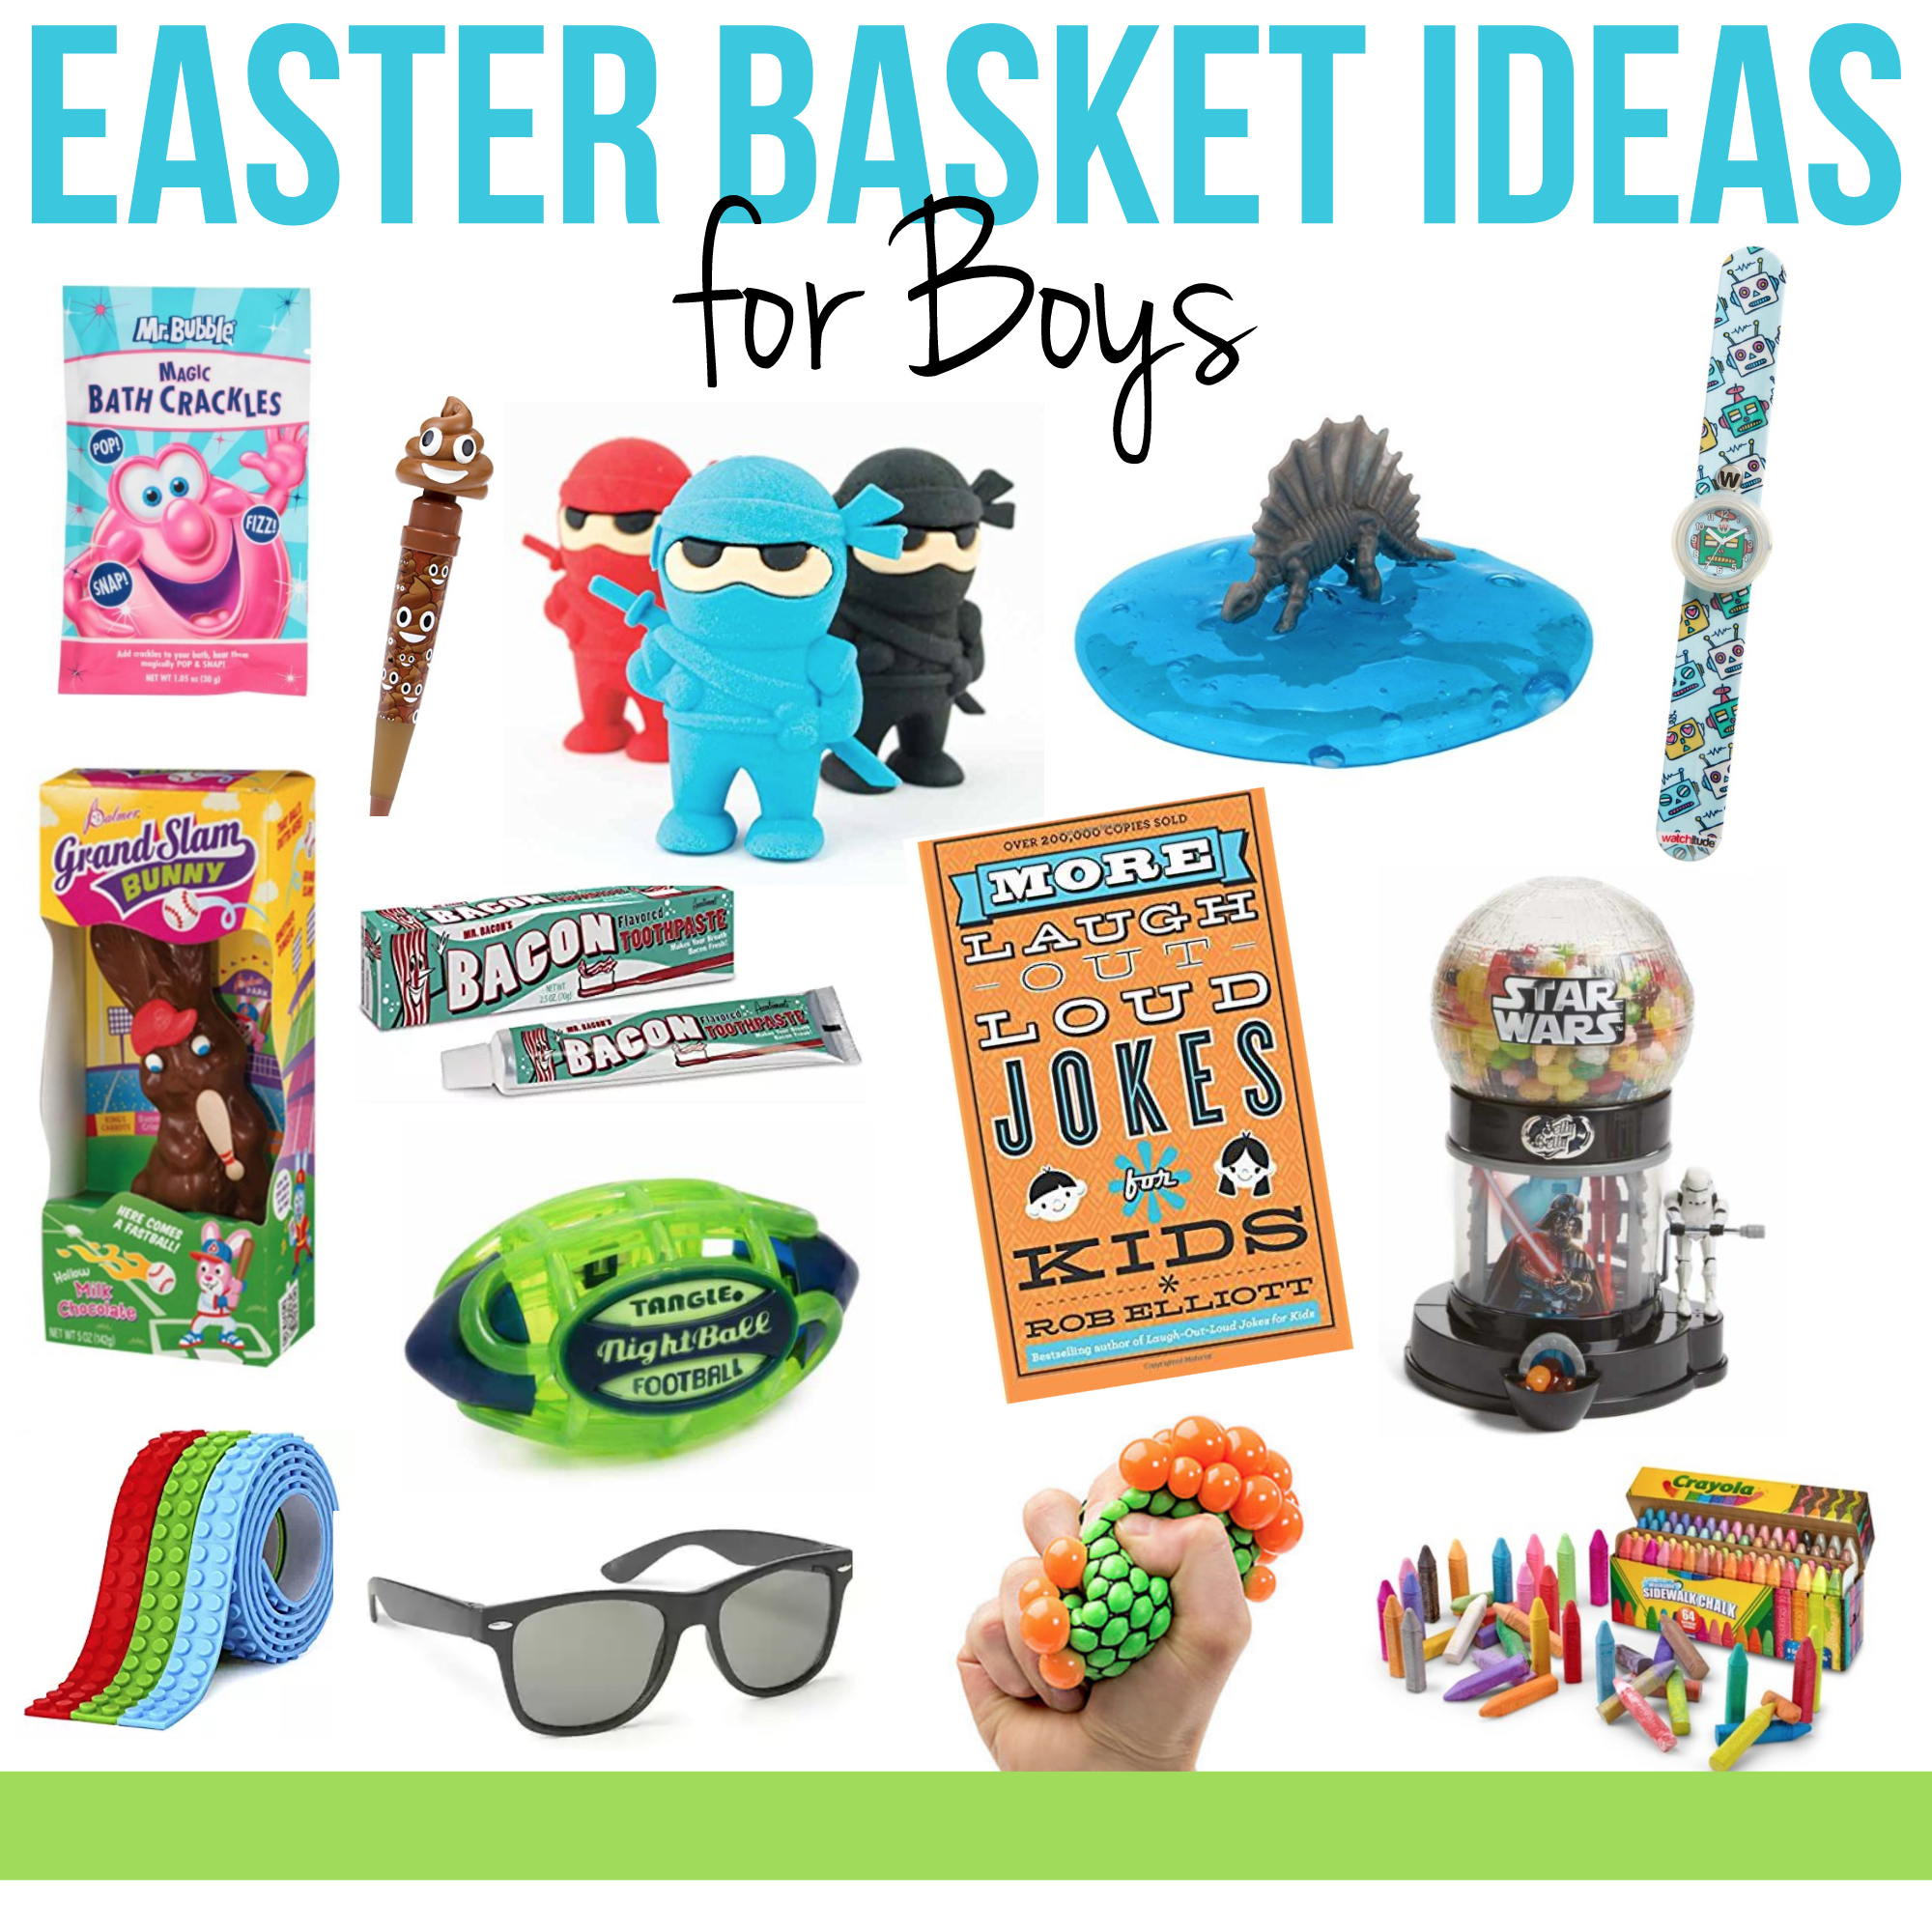 Easter basket ideas for boys my frugal adventures easter basket ideas for boys on myfrugaladventures cute little gift ideas for boys negle Images